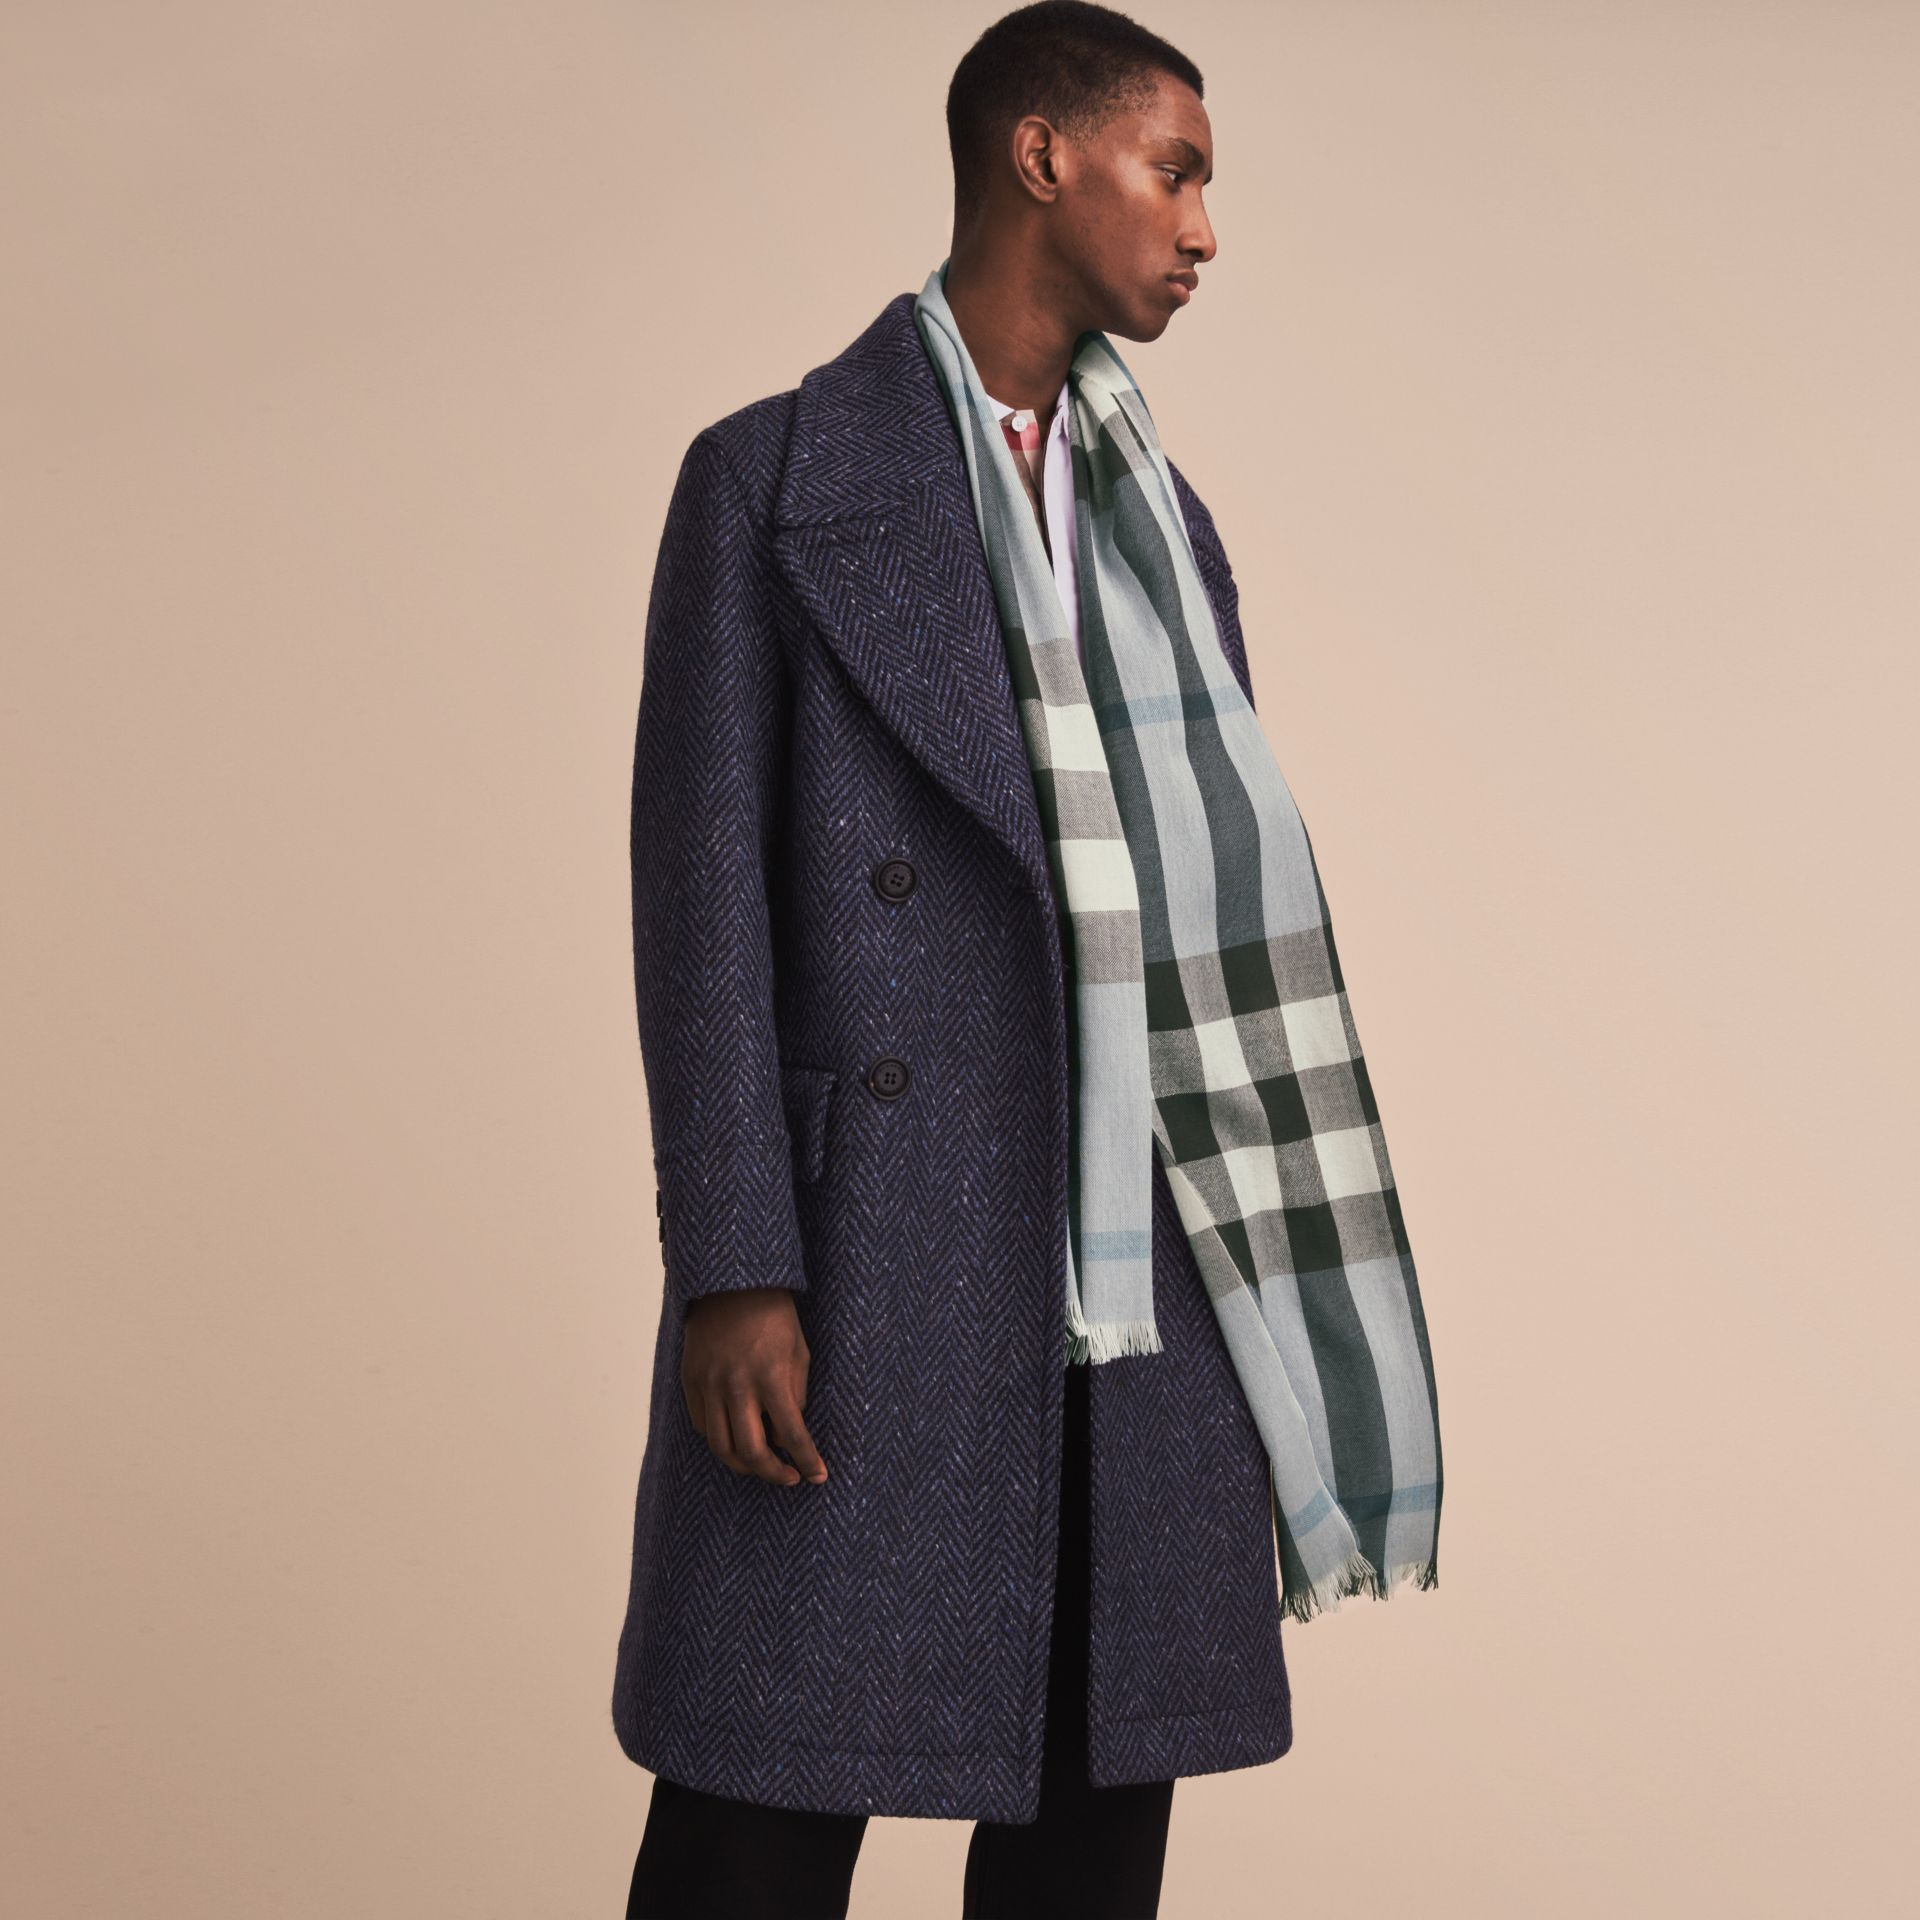 Lightweight Check Wool Cashmere Scarf in Mist Grey - Men | Burberry - gallery image 3